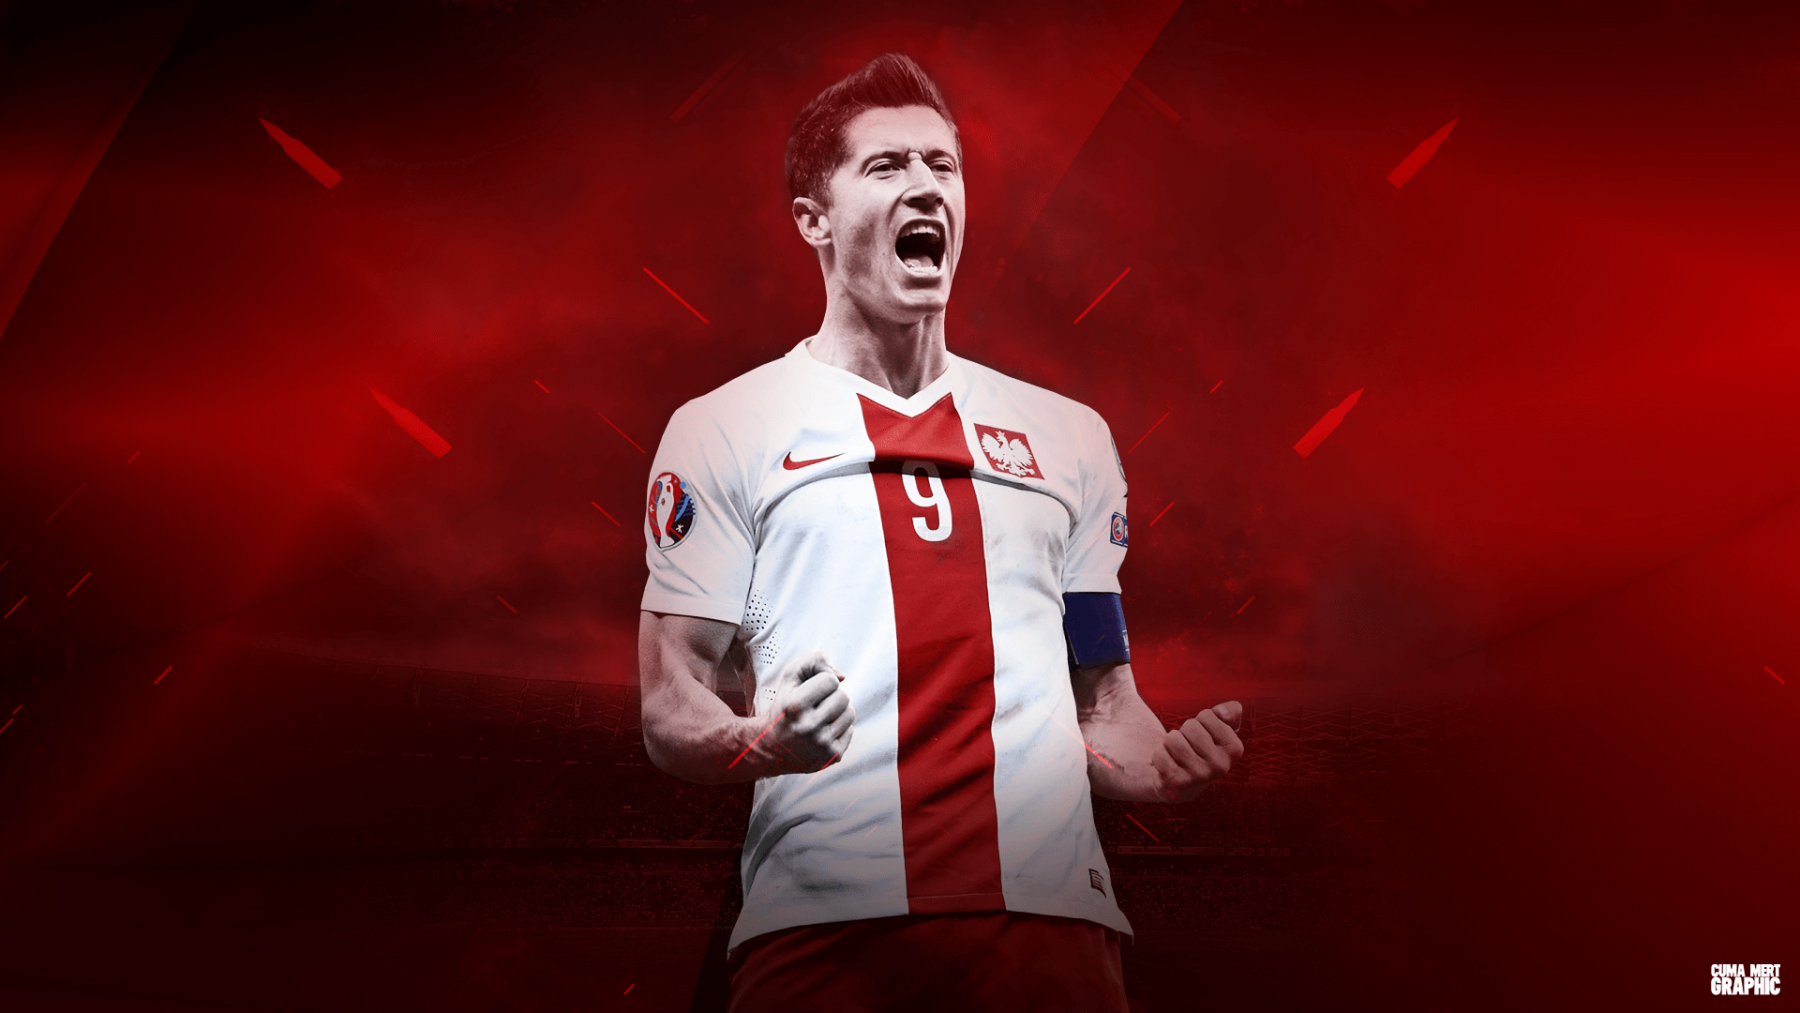 Robert Lewandowski HD Desktop Wallpapers